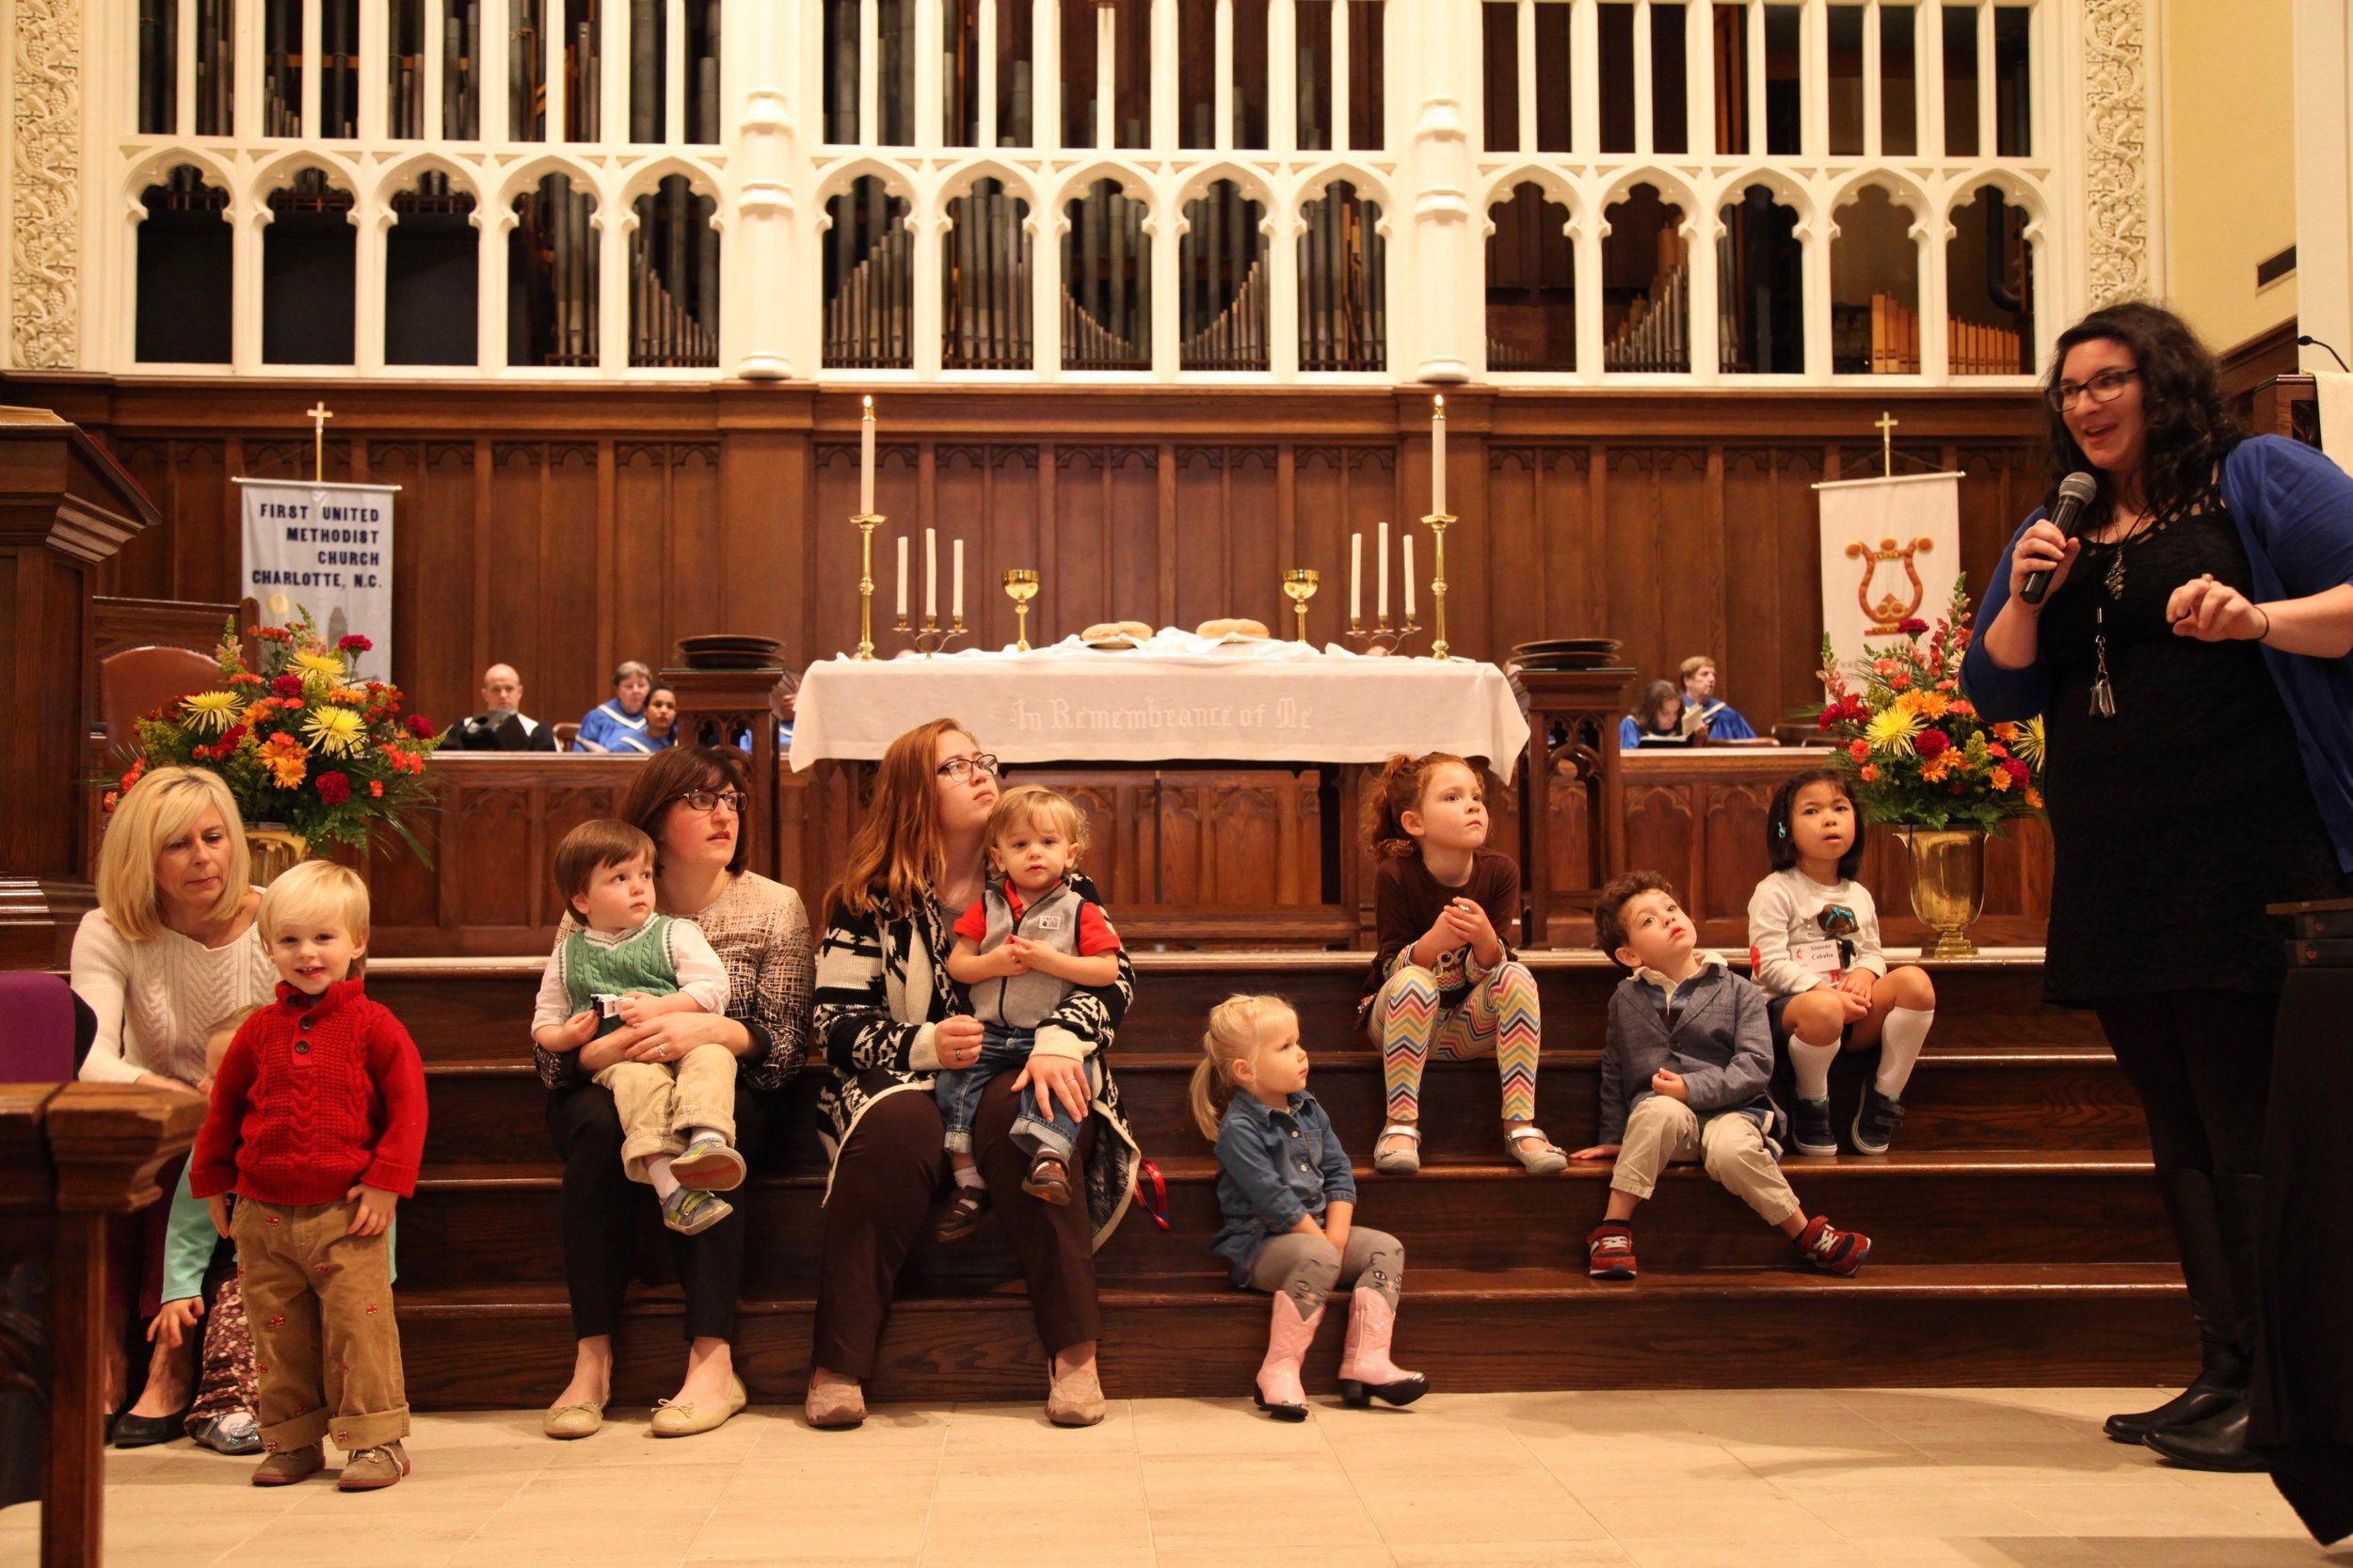 """Family and Outreach Minister Kelly McRell leading the kids in a """"Children's Moment"""" during the 11:00 a.m. Sunday worship service."""